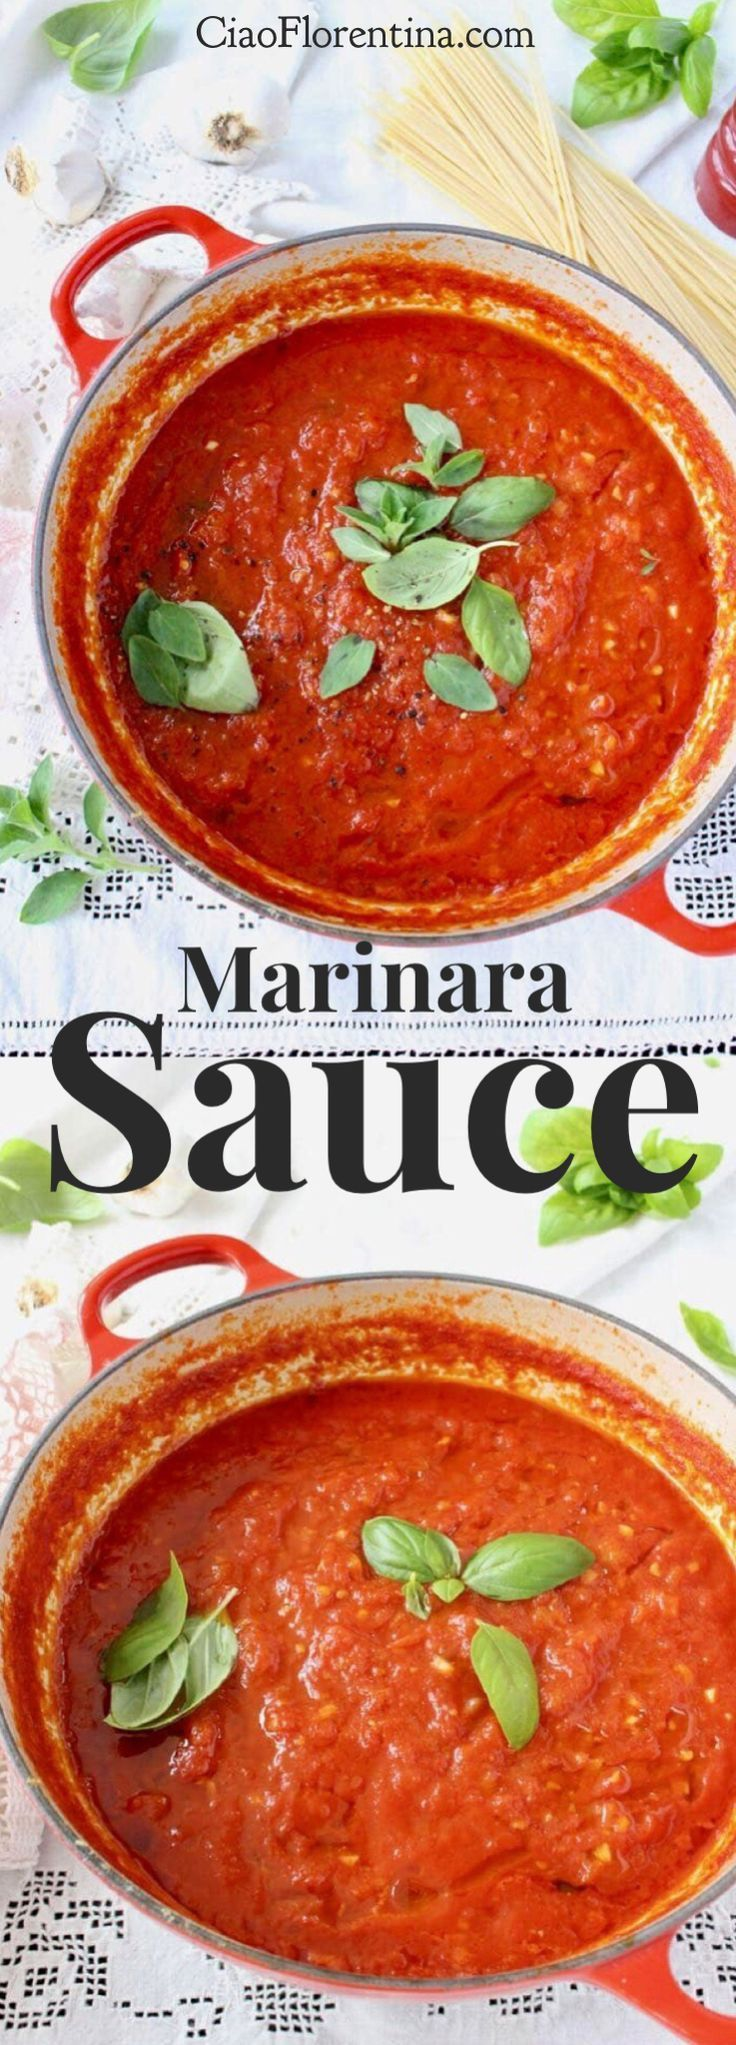 The Best Marinara Sauce Recipe, authentic Italian made with San Marzano tomatoes, garlic and basil!  Easy, chunky, creamy and hearty, this is the only recipe you'll need  | http://CiaoFlorentina.com @CiaoFlorentina